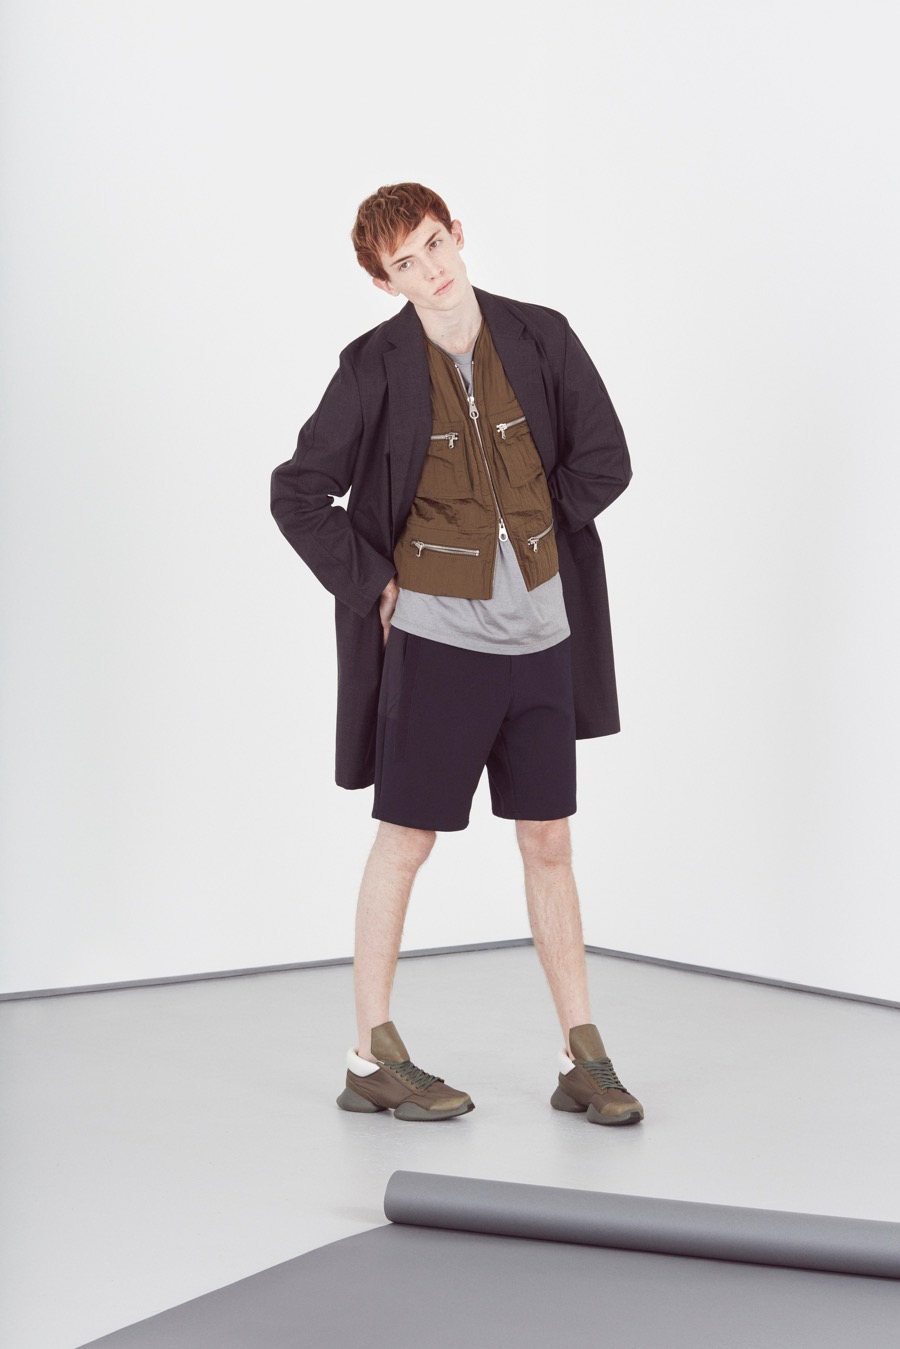 STYLED: oki-ni Presents Its Latest Spring Arrivals